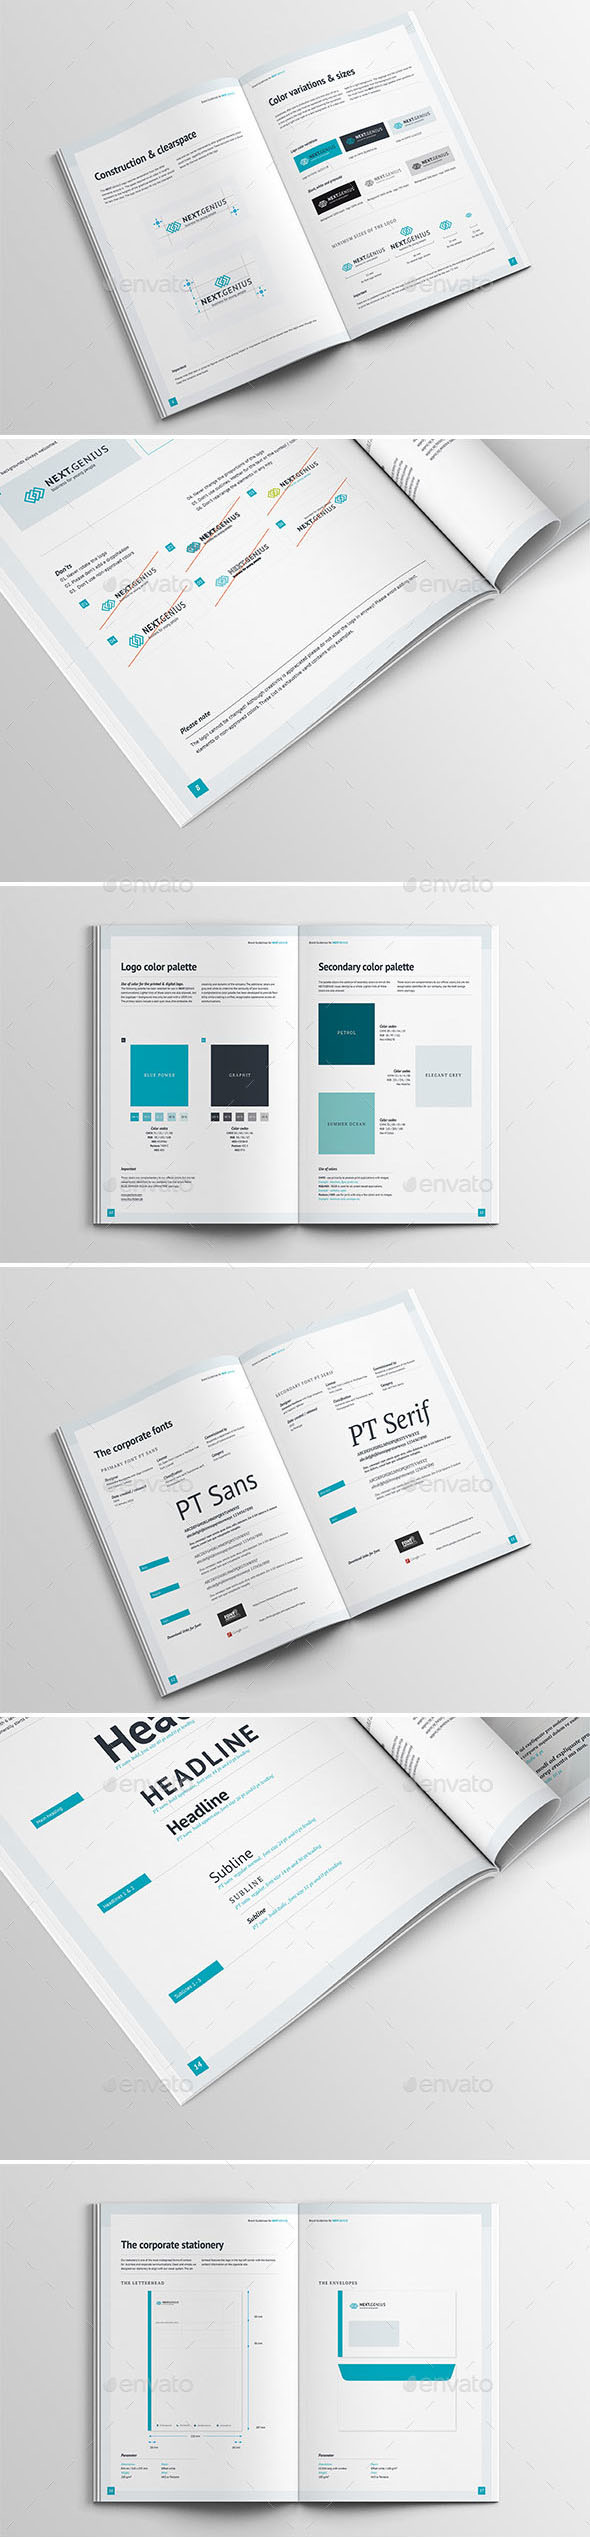 Brand Guidelines—32 Pages